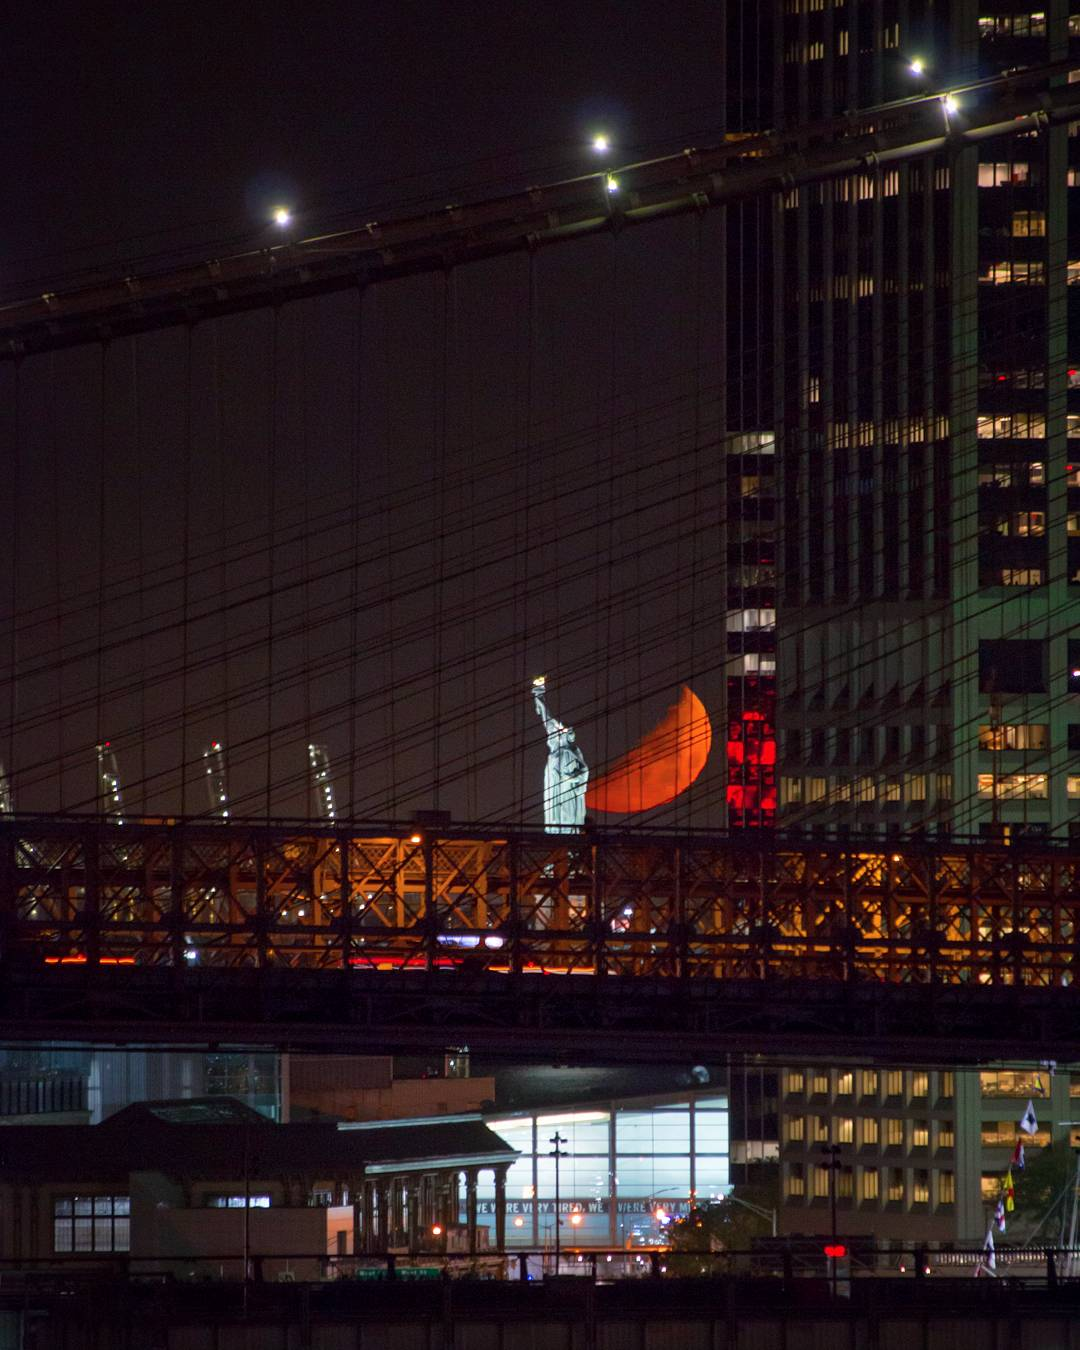 Last night's moonset through the suspension cables of the Brooklyn Bridge #NYC https://t.co/FByfOjq70b